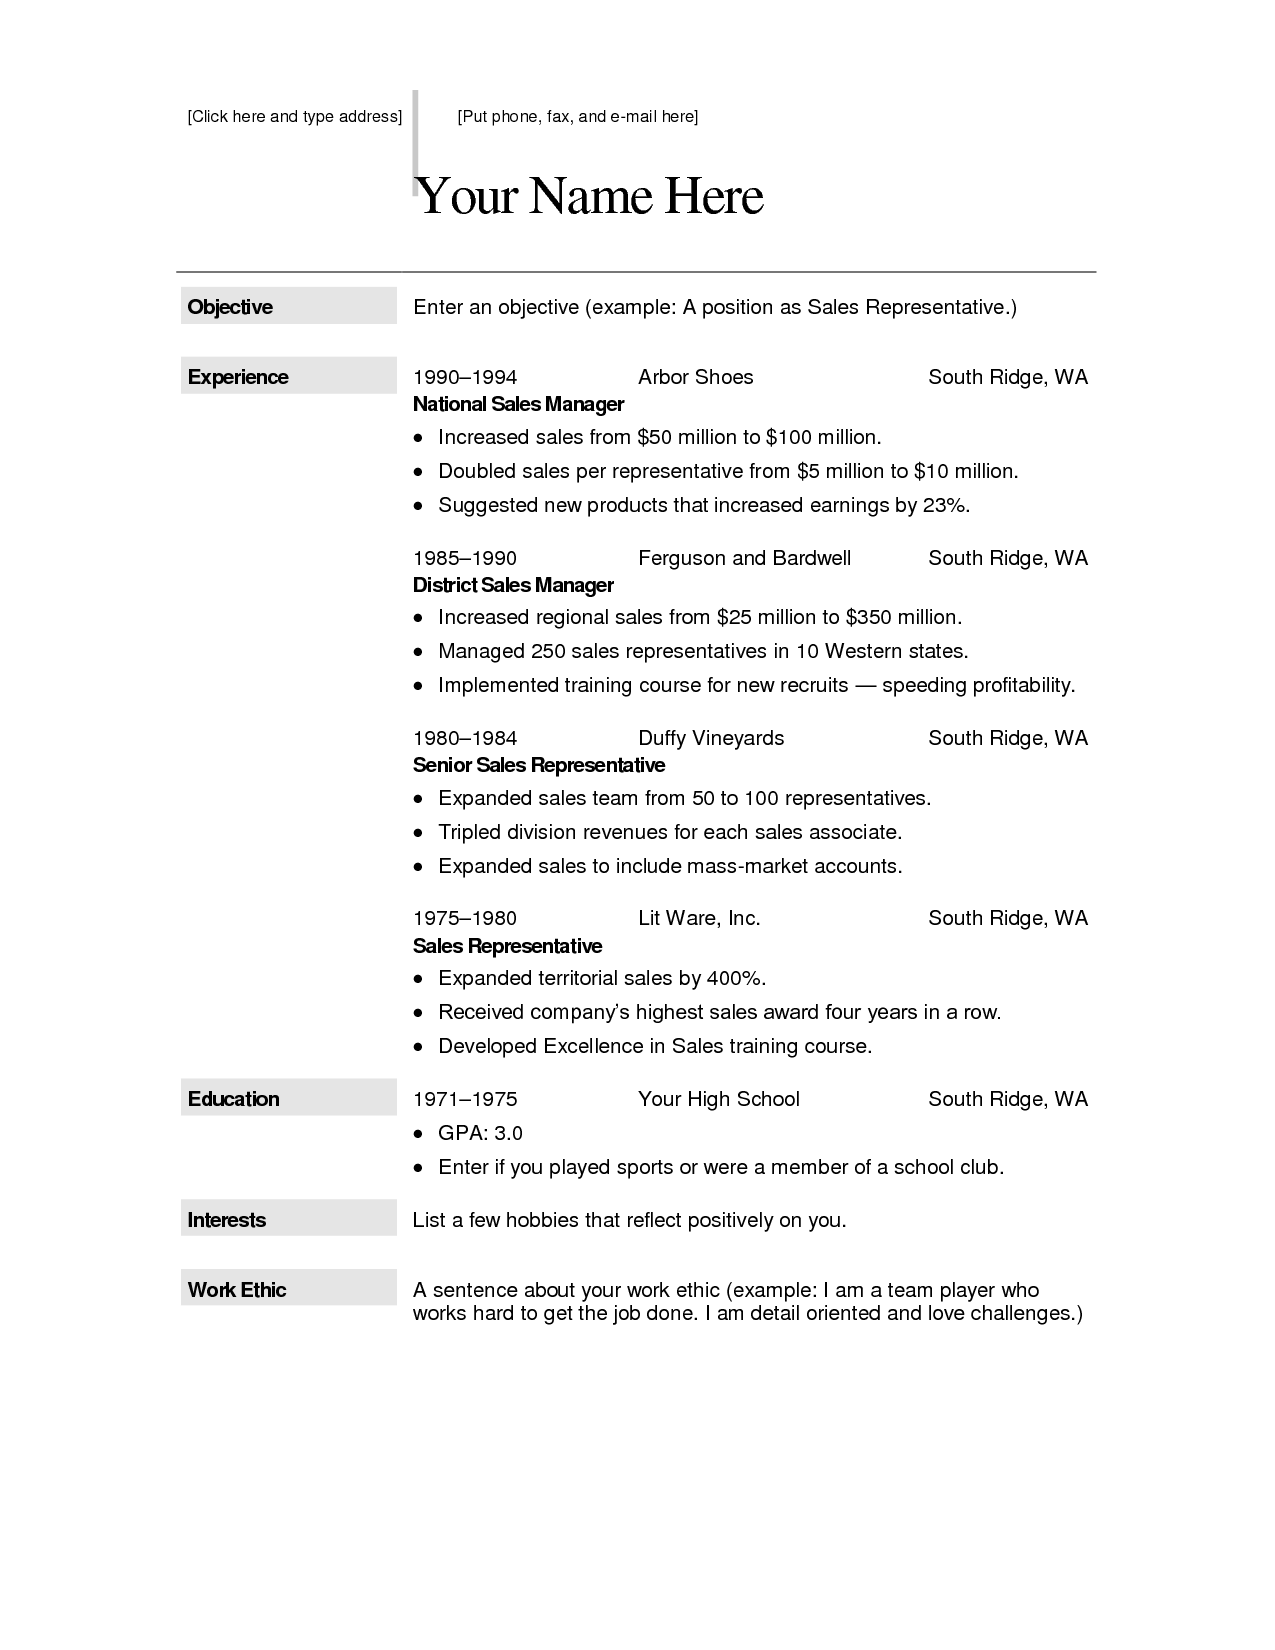 Free Resume Templates Word 2010 Classy Free Creative Resume Templates For Macfree Creative Resume